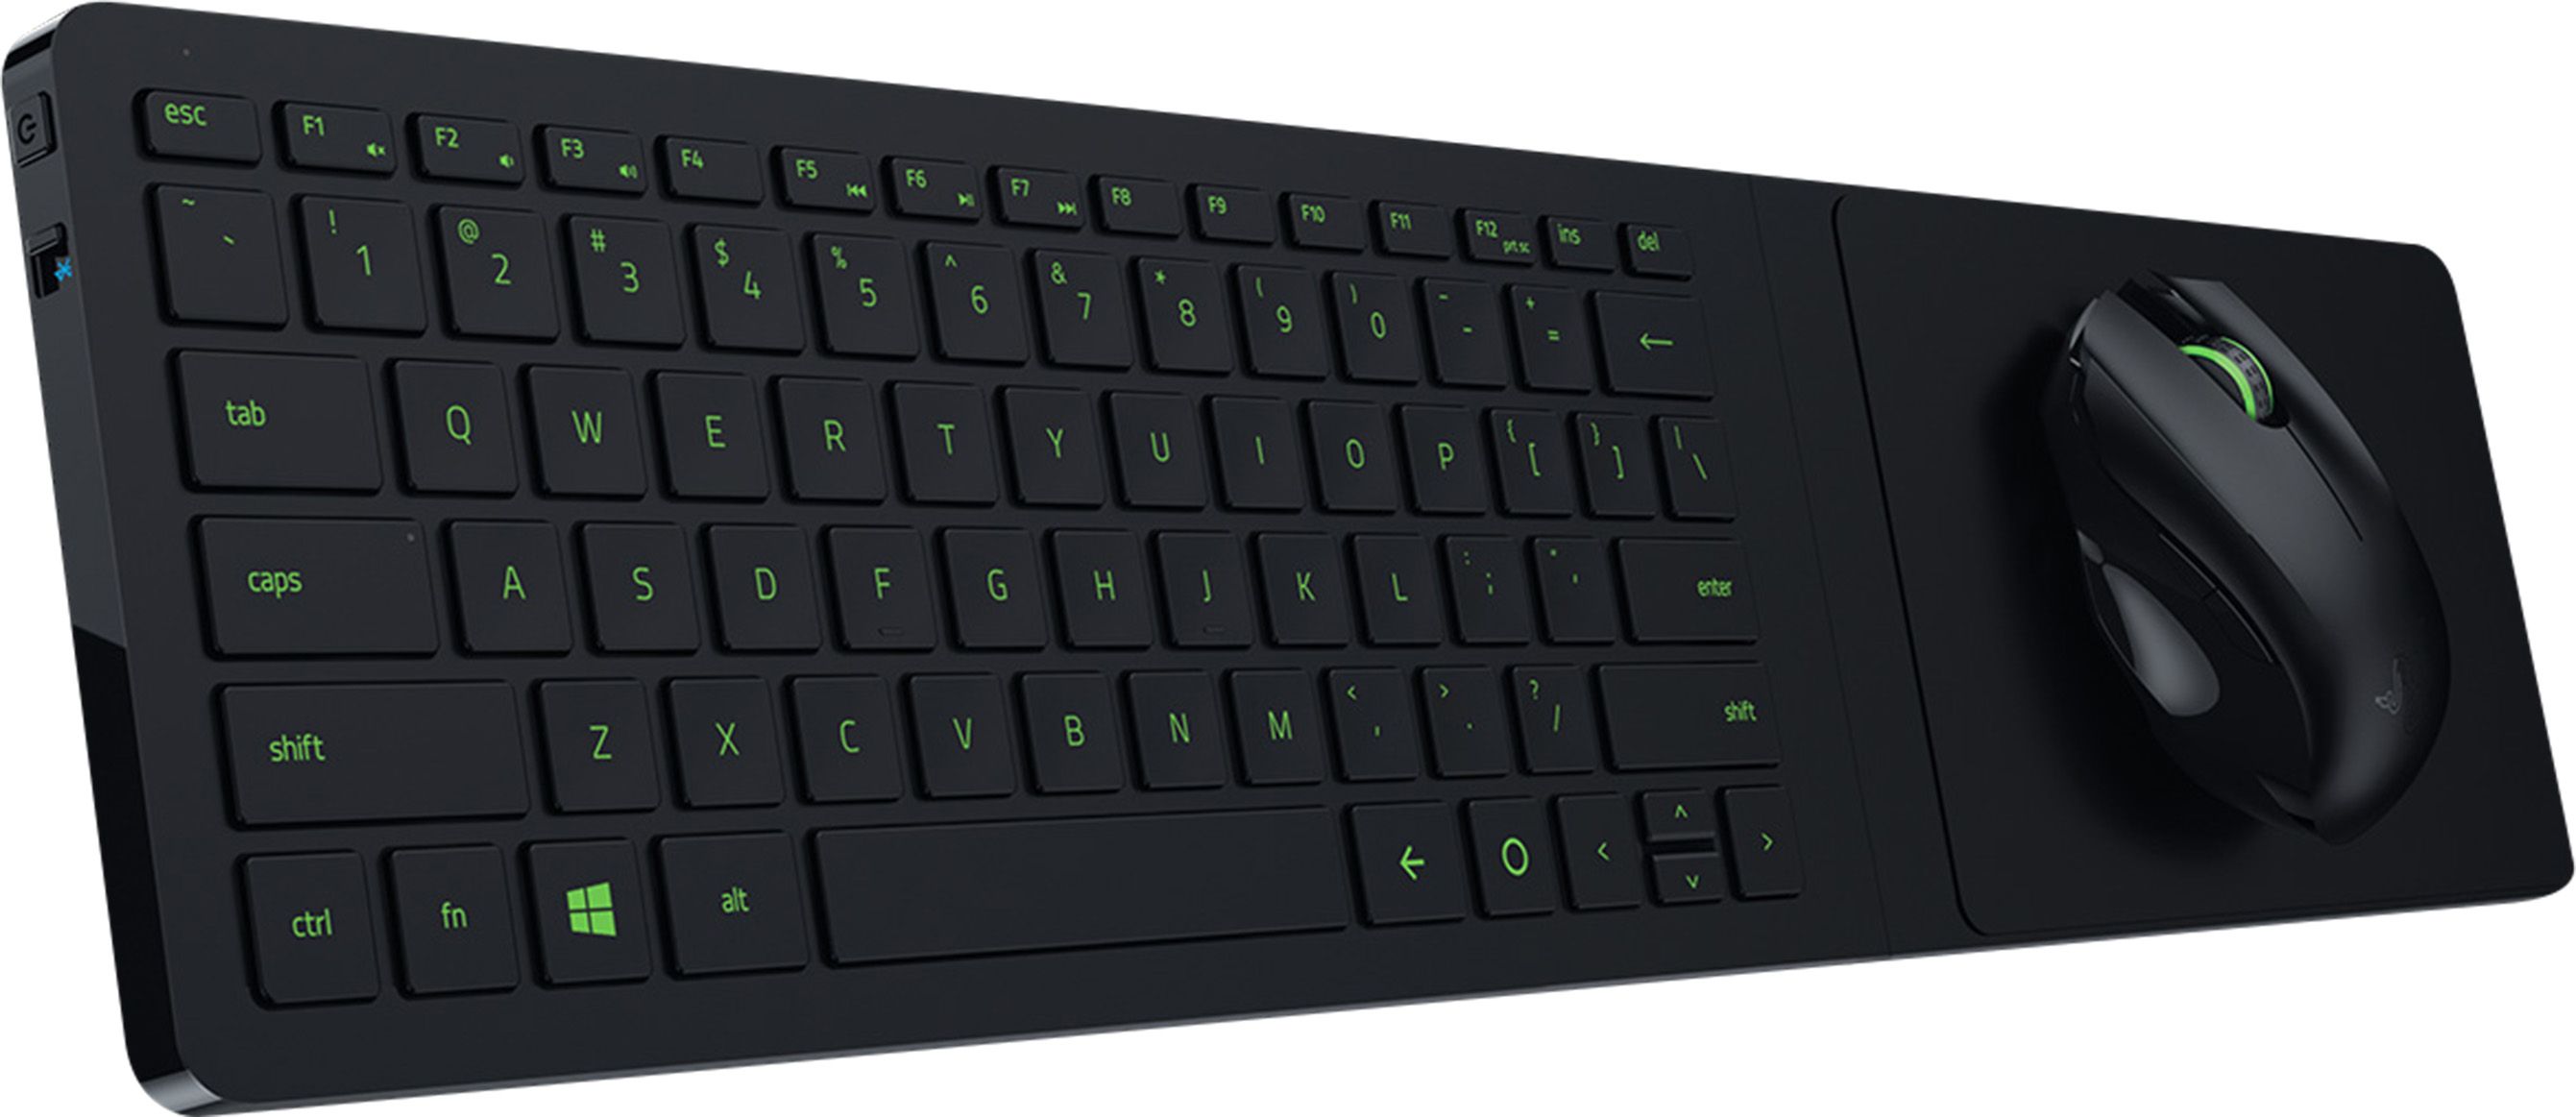 Razer Turret Living Room Mouse and Lapboard Deal